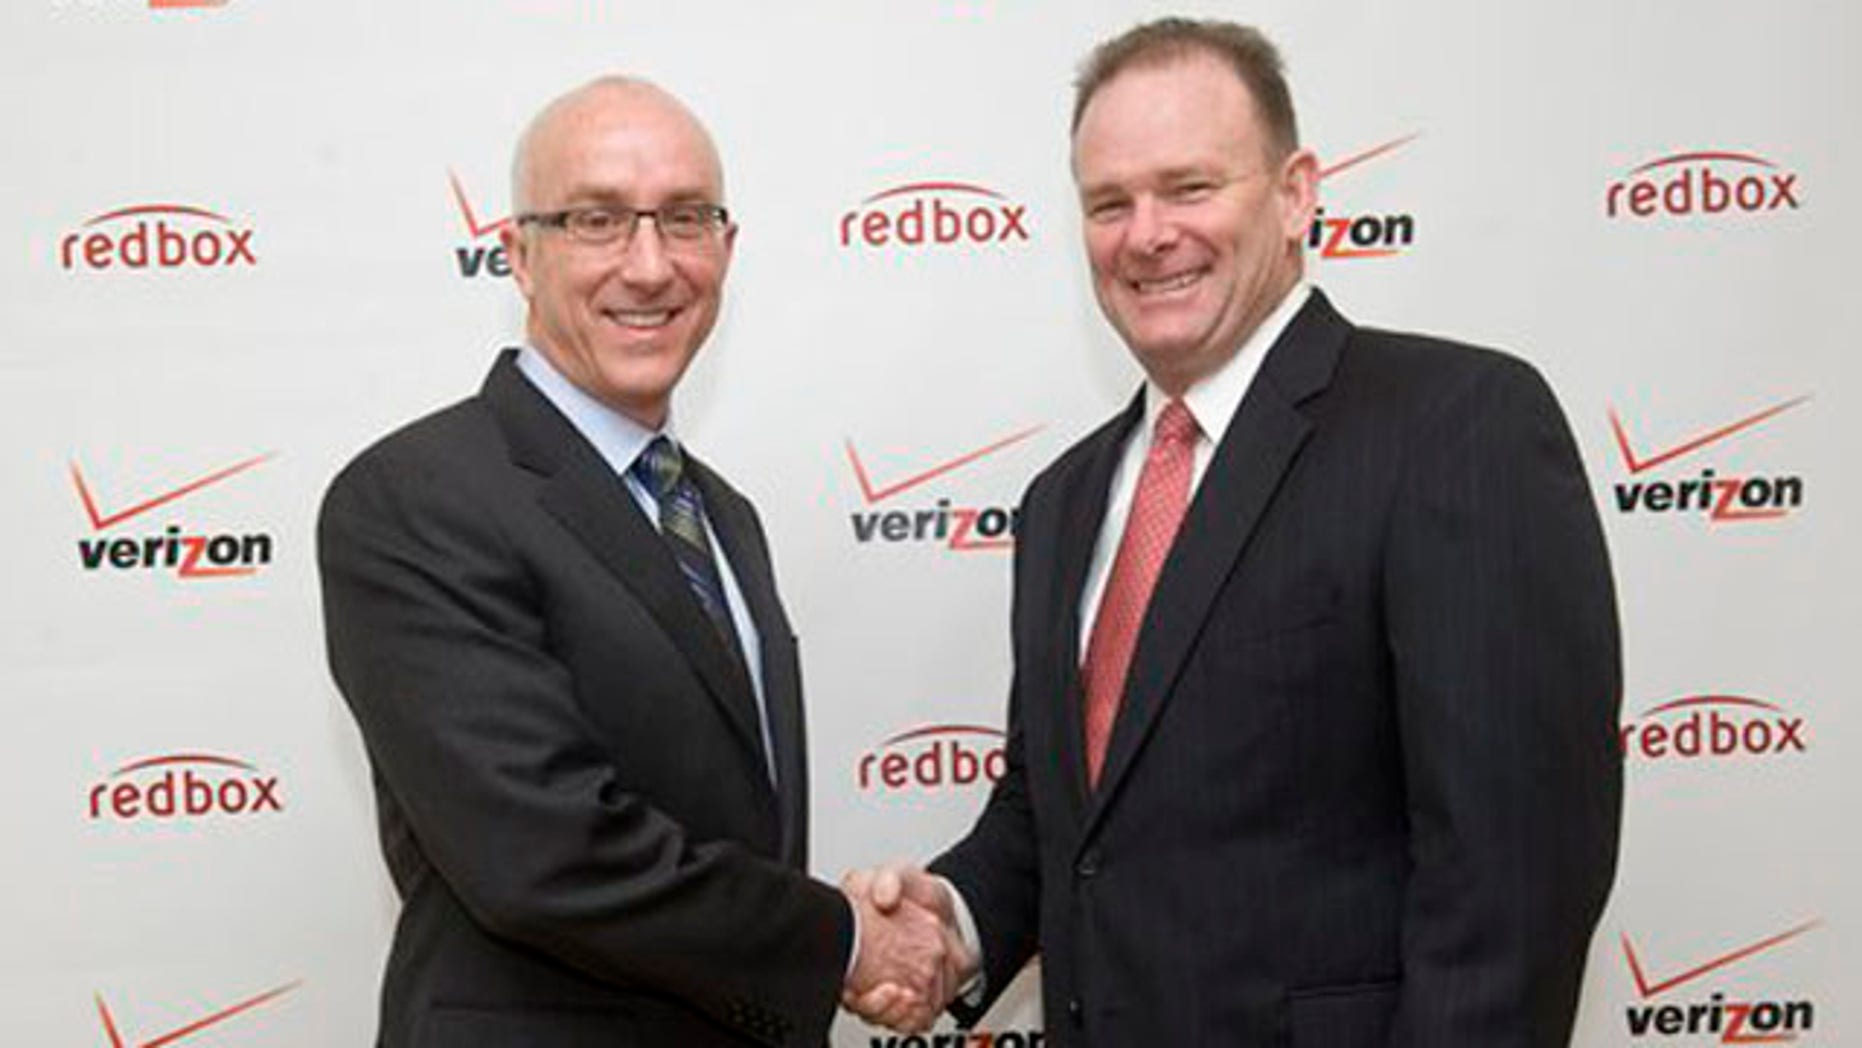 Feb. 6, 2012: Bob Mudge, right, president of Verizon Consumer and Mass Business Markets, and Paul Davis, CEO of Coinstar, Inc. announced in New York a joint venture that delivers a combination of Redbox entertainment options with an on-demand streaming service from Verizon, Inc.